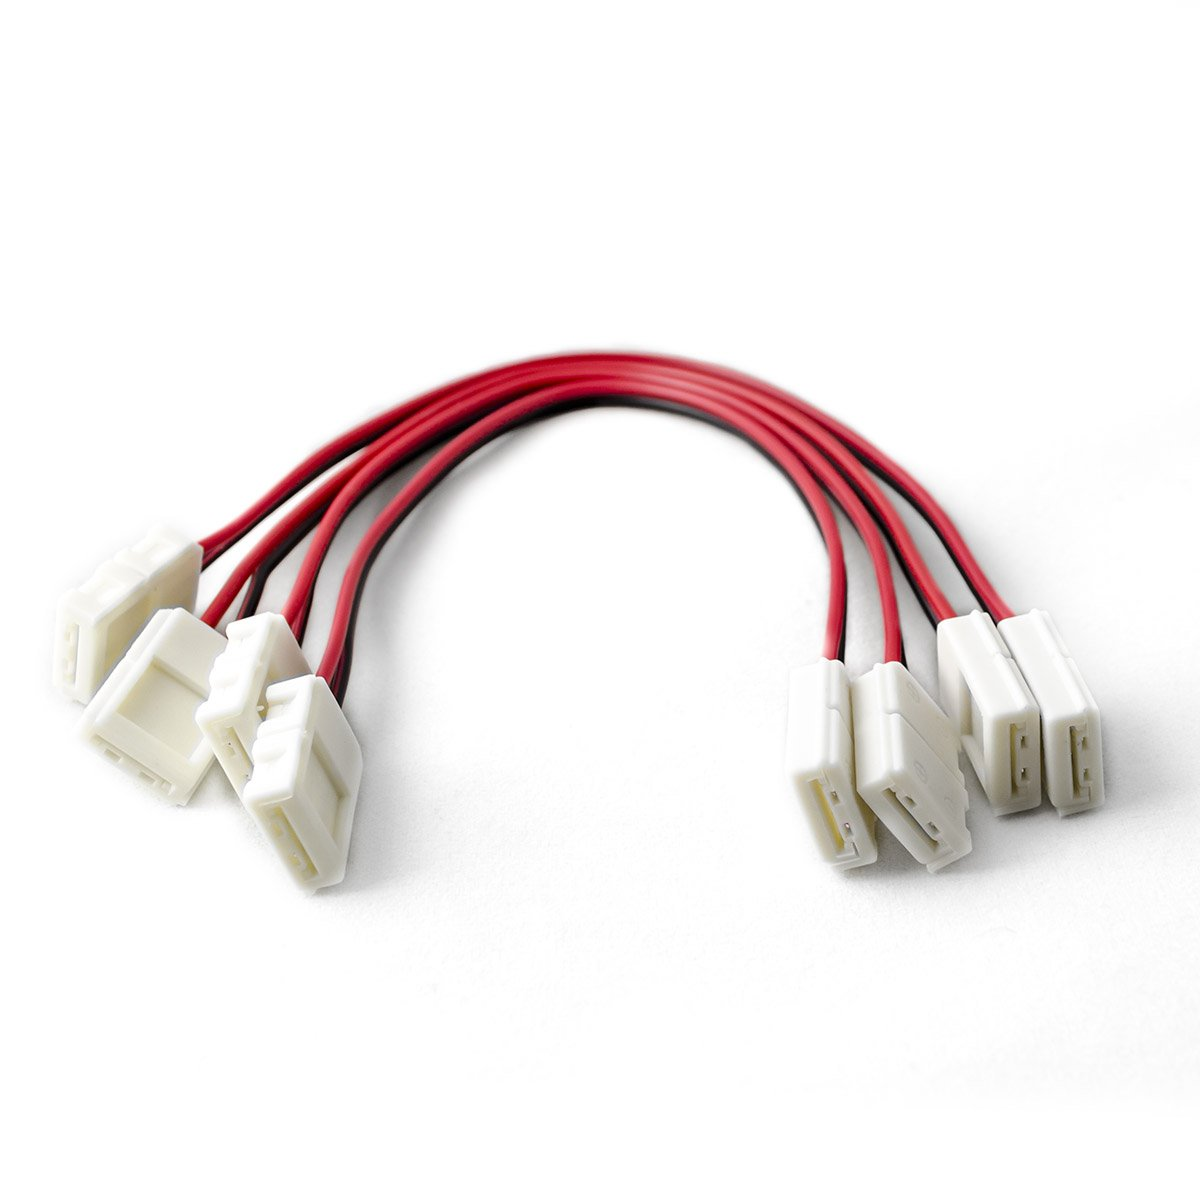 HitLights CON-08S-B00A-4PK LED Light Strip Connector, 8mm Single Color 3528 - 6 Inch Any Angle Strip to Strip, 4 Pack